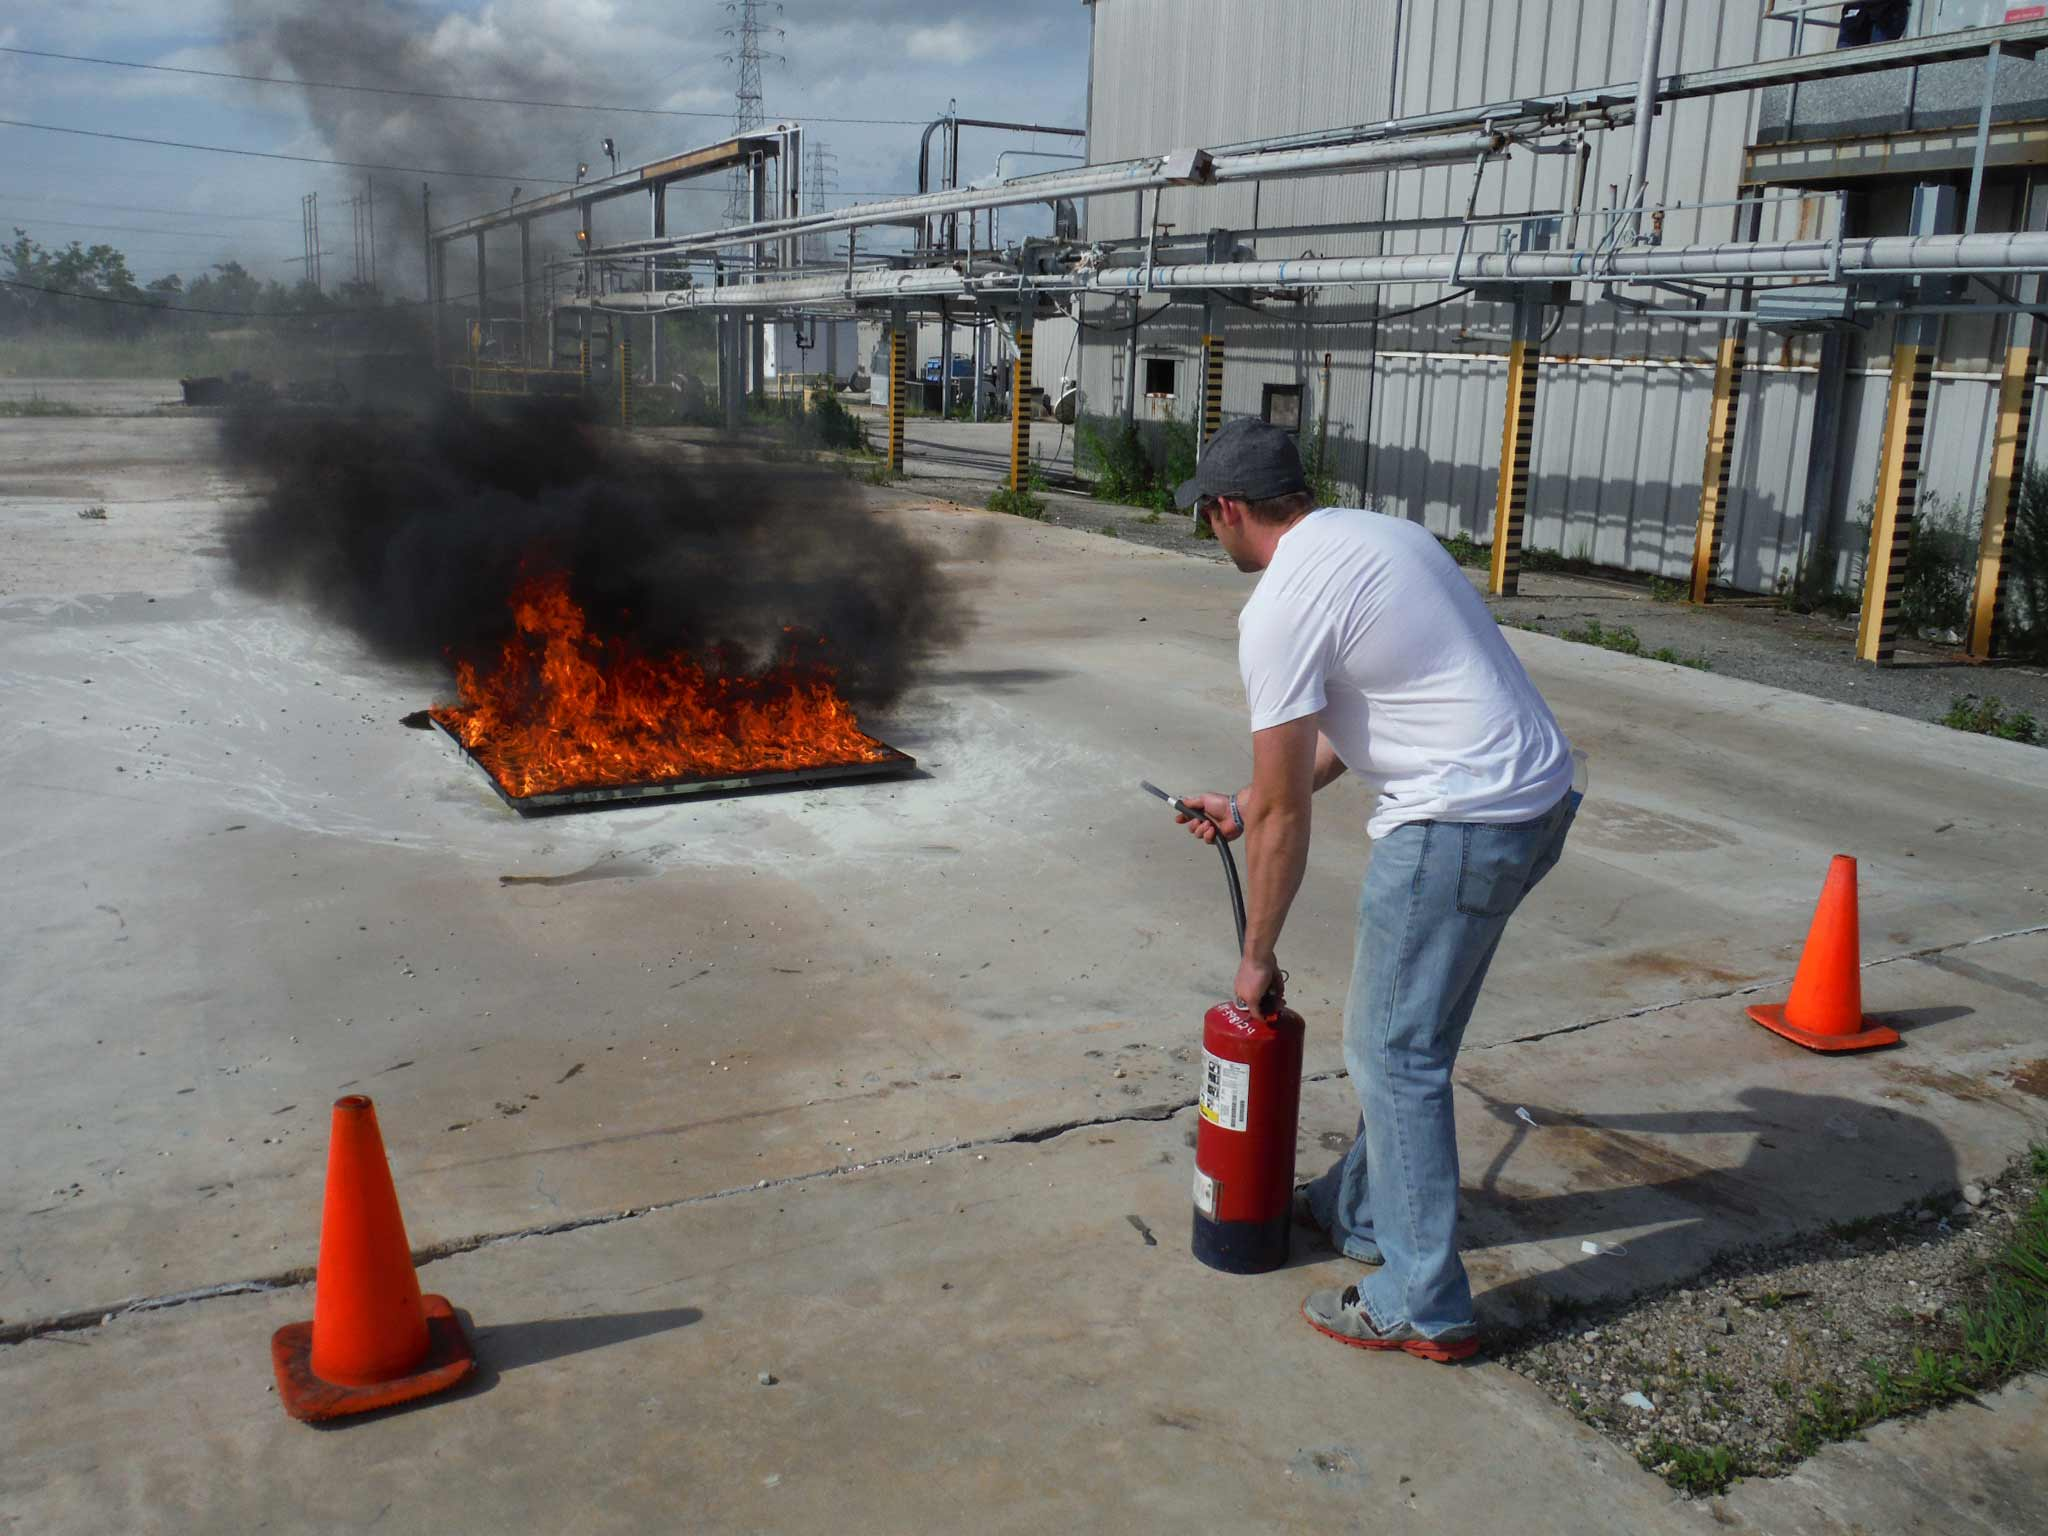 Fire Extinguisher/Fire Guard Course, beaumont, Texas, Foster Safety Course